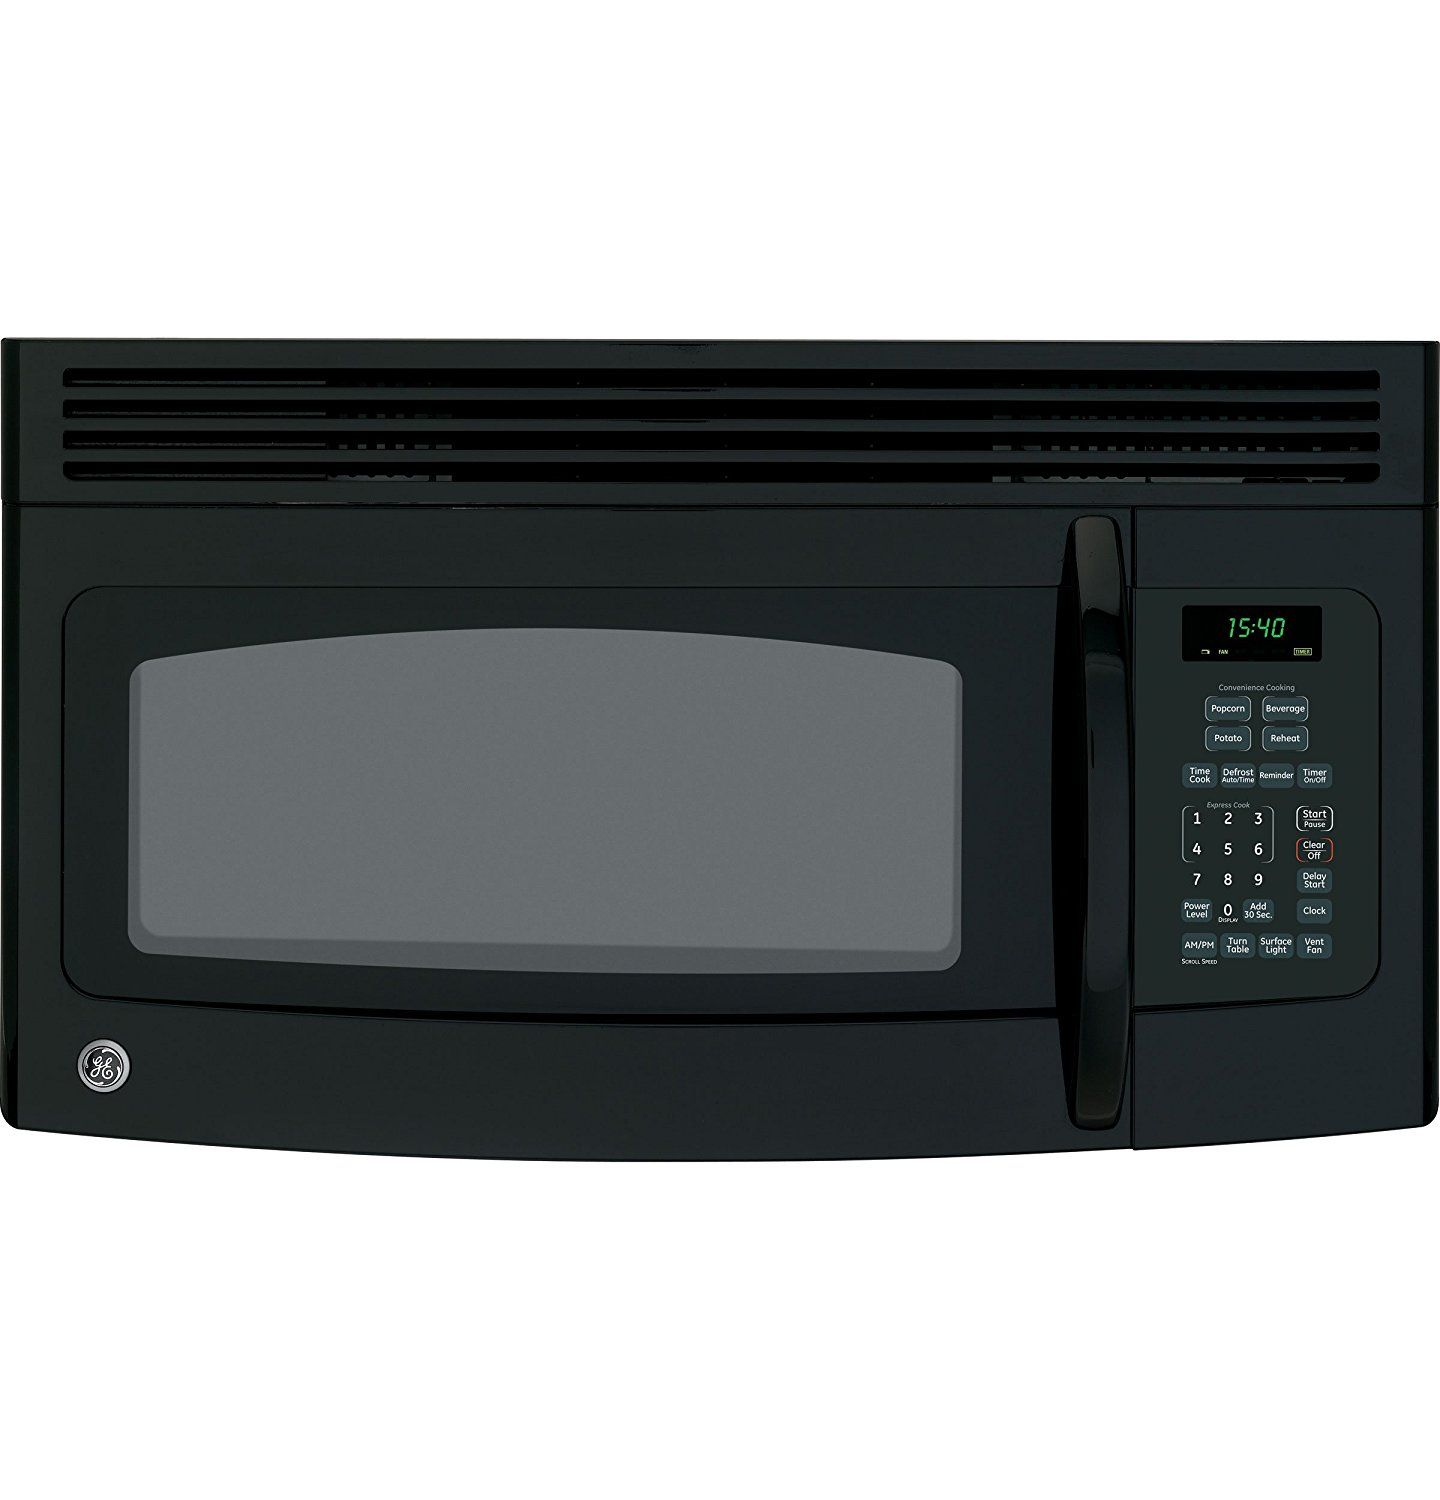 Ge Spacemaker Over The Range Microwave Oven Jvm1540dmbb Click Image To Review More Details Range Microwave Ge Spacemaker Microwave Black Microwave